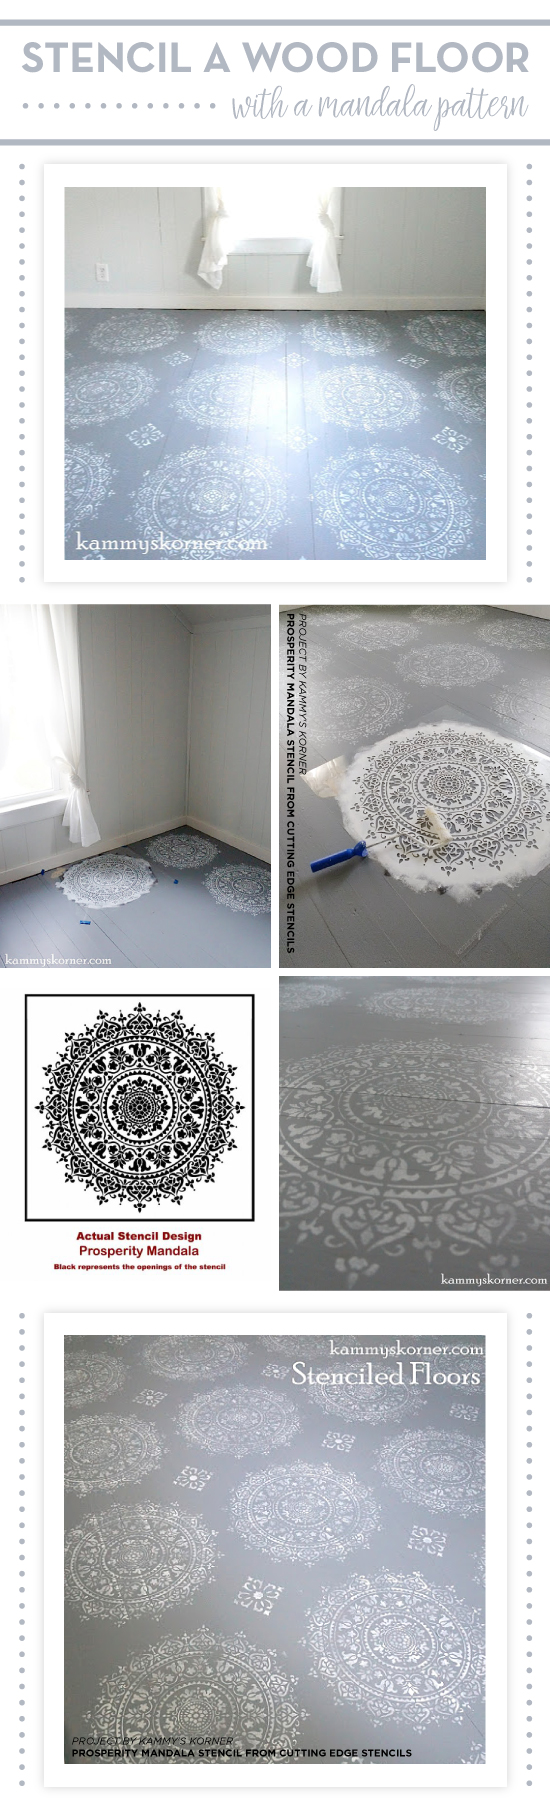 Cutting Edge Stencils shares how to stencil a wood floor using the Prosperity Mandala Stenci. http://www.cuttingedgestencils.com/fabiola-tile-stencil-spanish-portugese-tiles-stencils.html